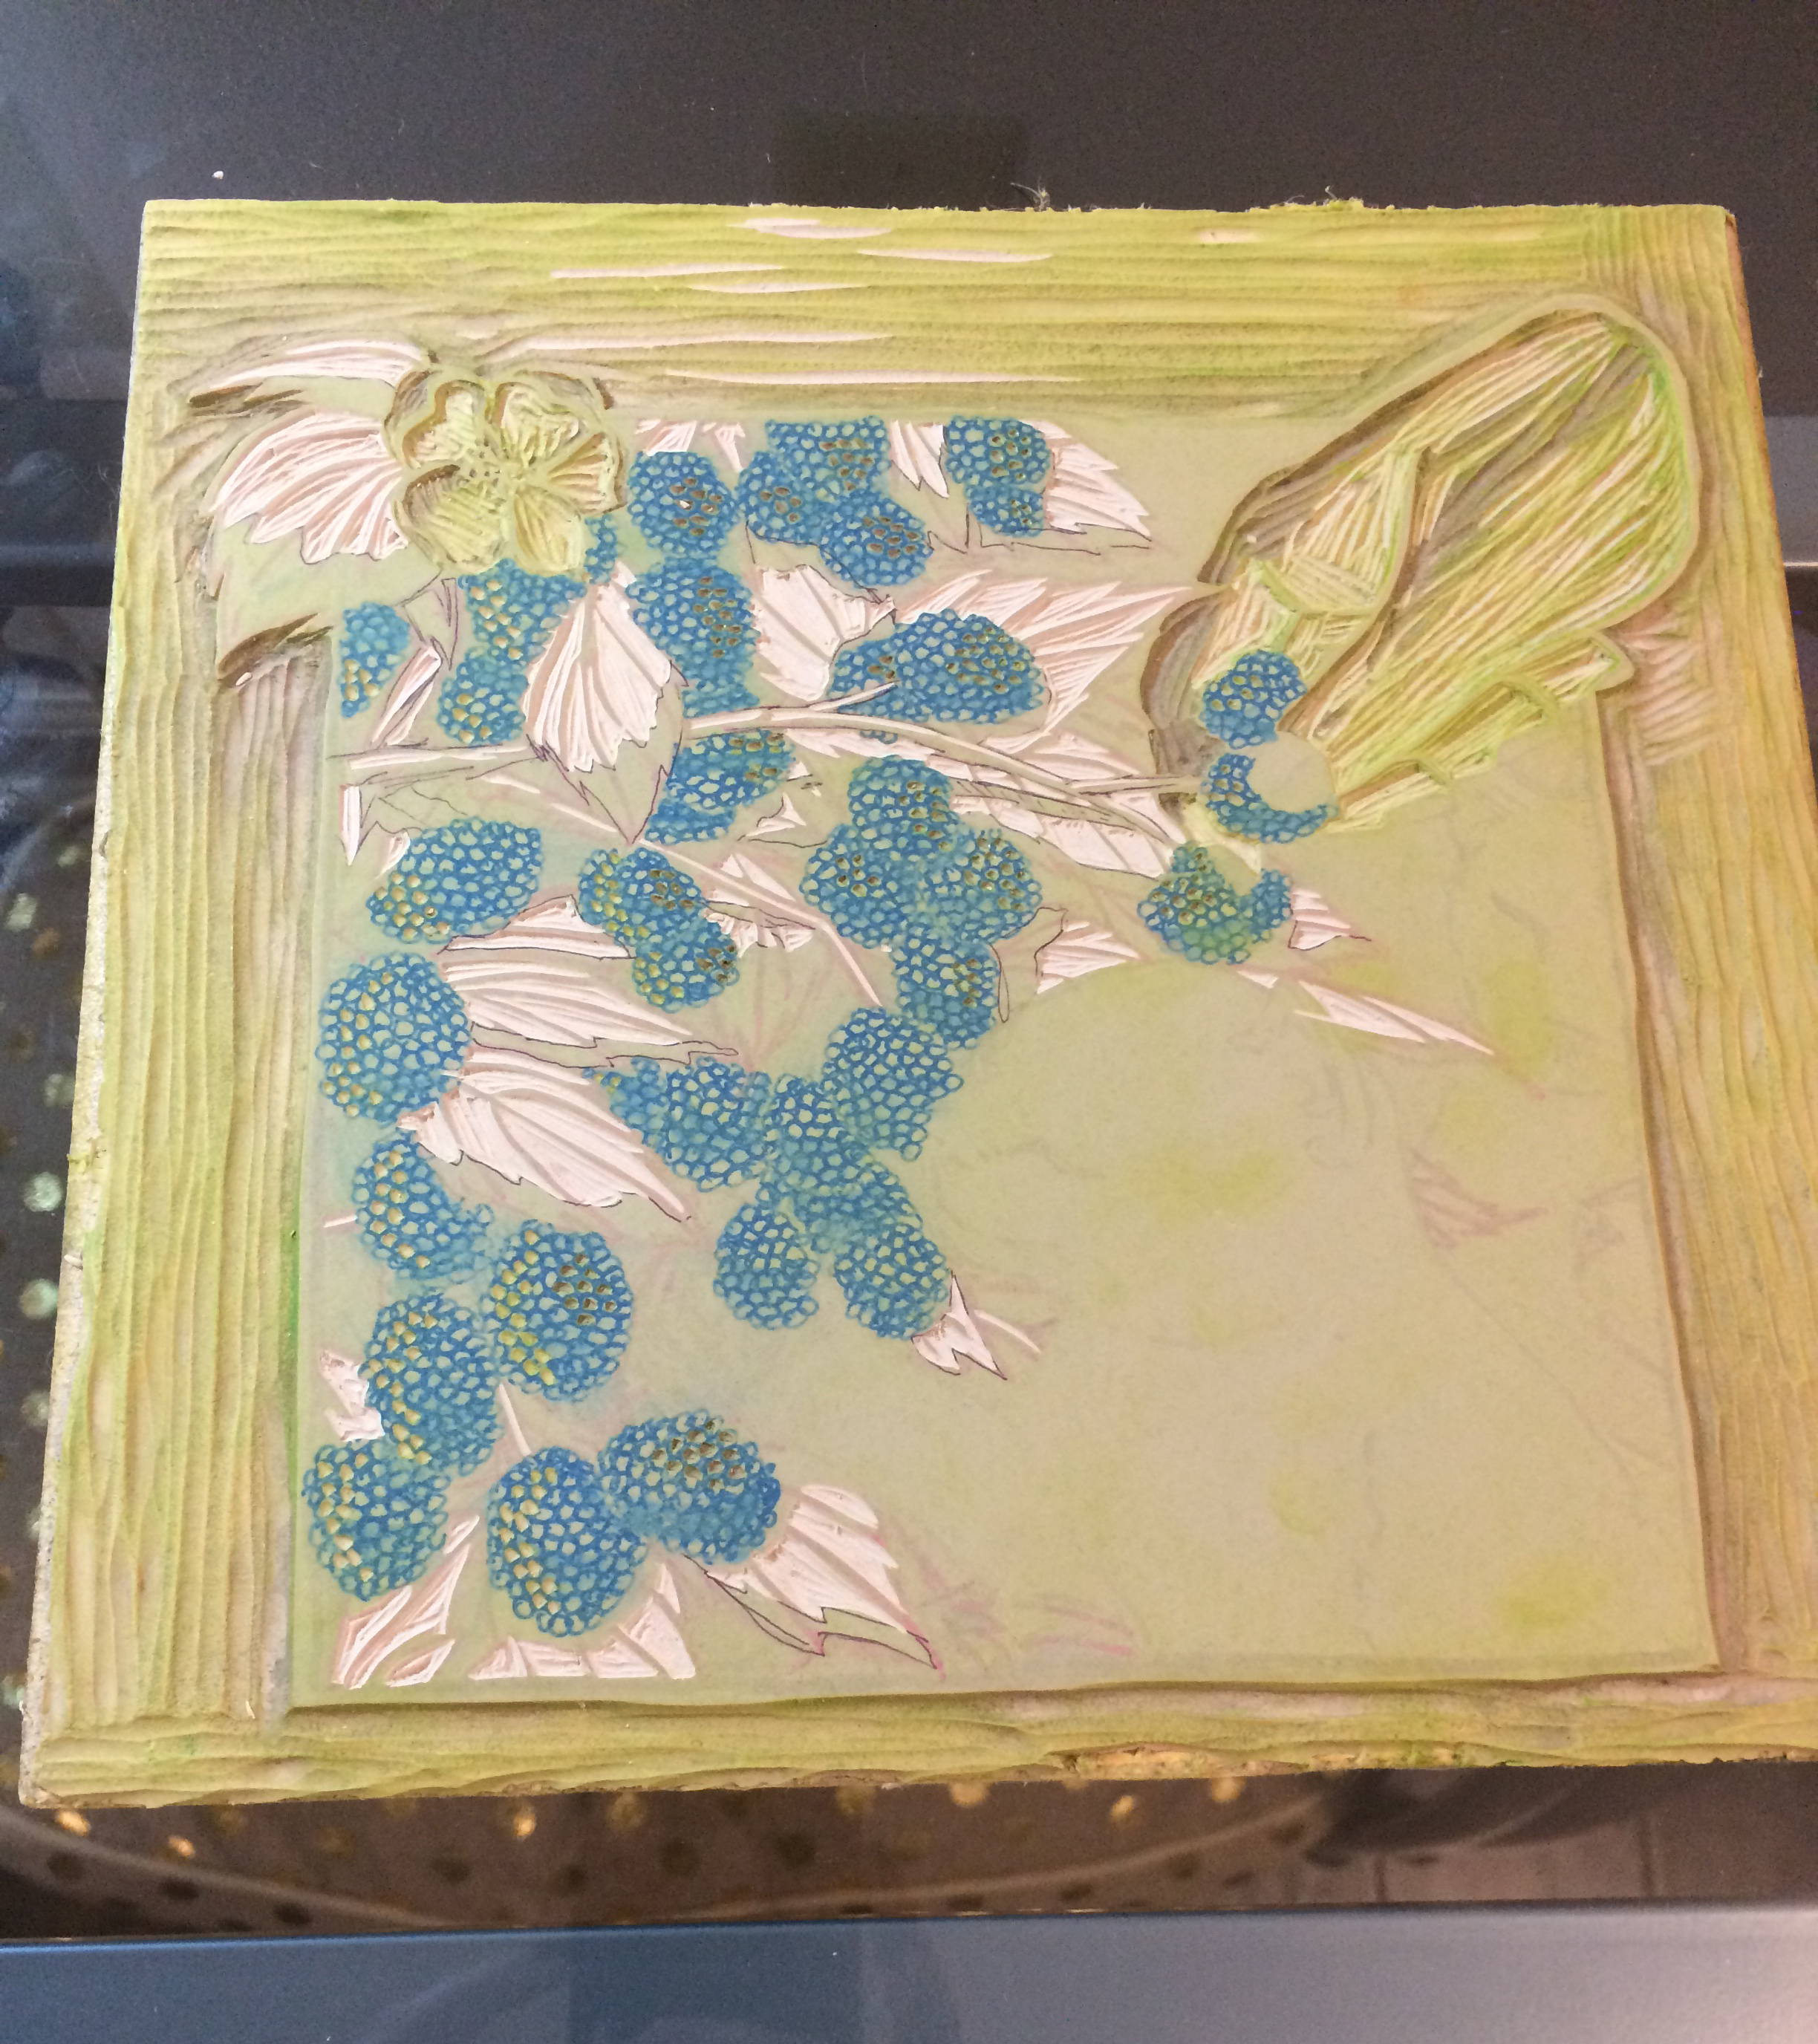 Layer 3 is done, so this is layer 4. It will be the leaf shadow color, and it will reveal the light green leaf color.